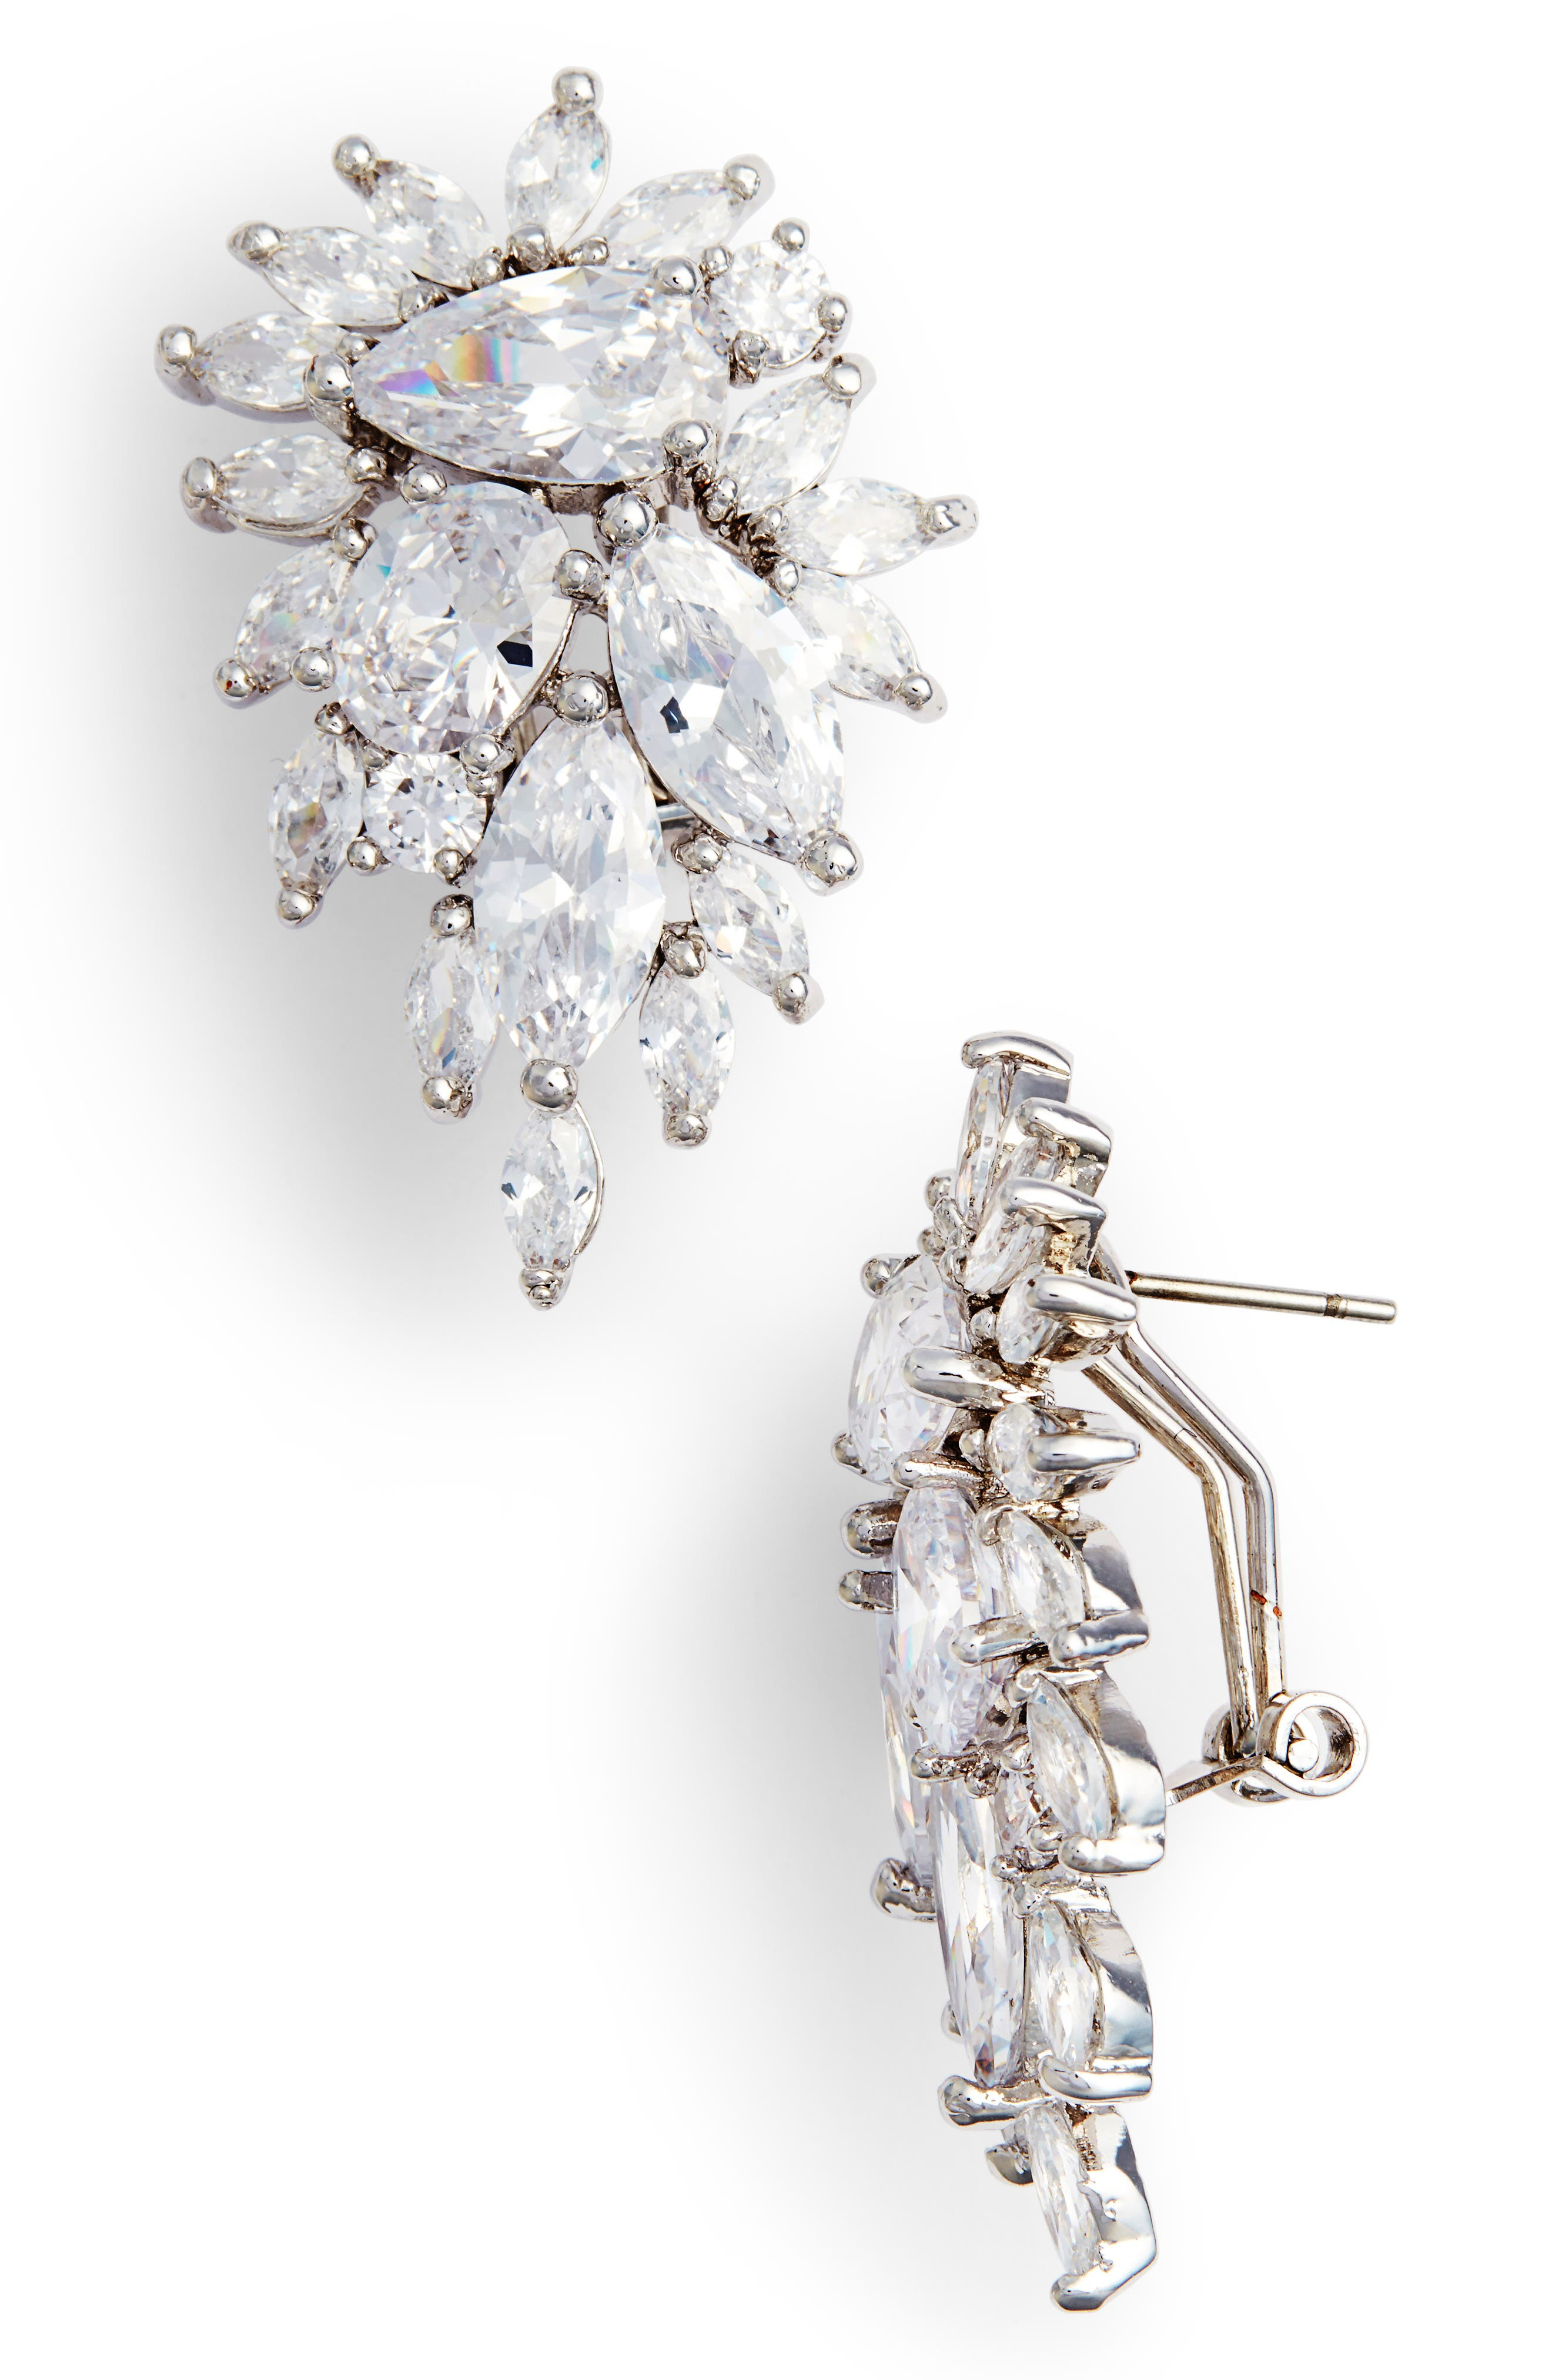 Cluster Omega Clip Earrings,                             Main thumbnail 1, color,                             Silver/ White Cz